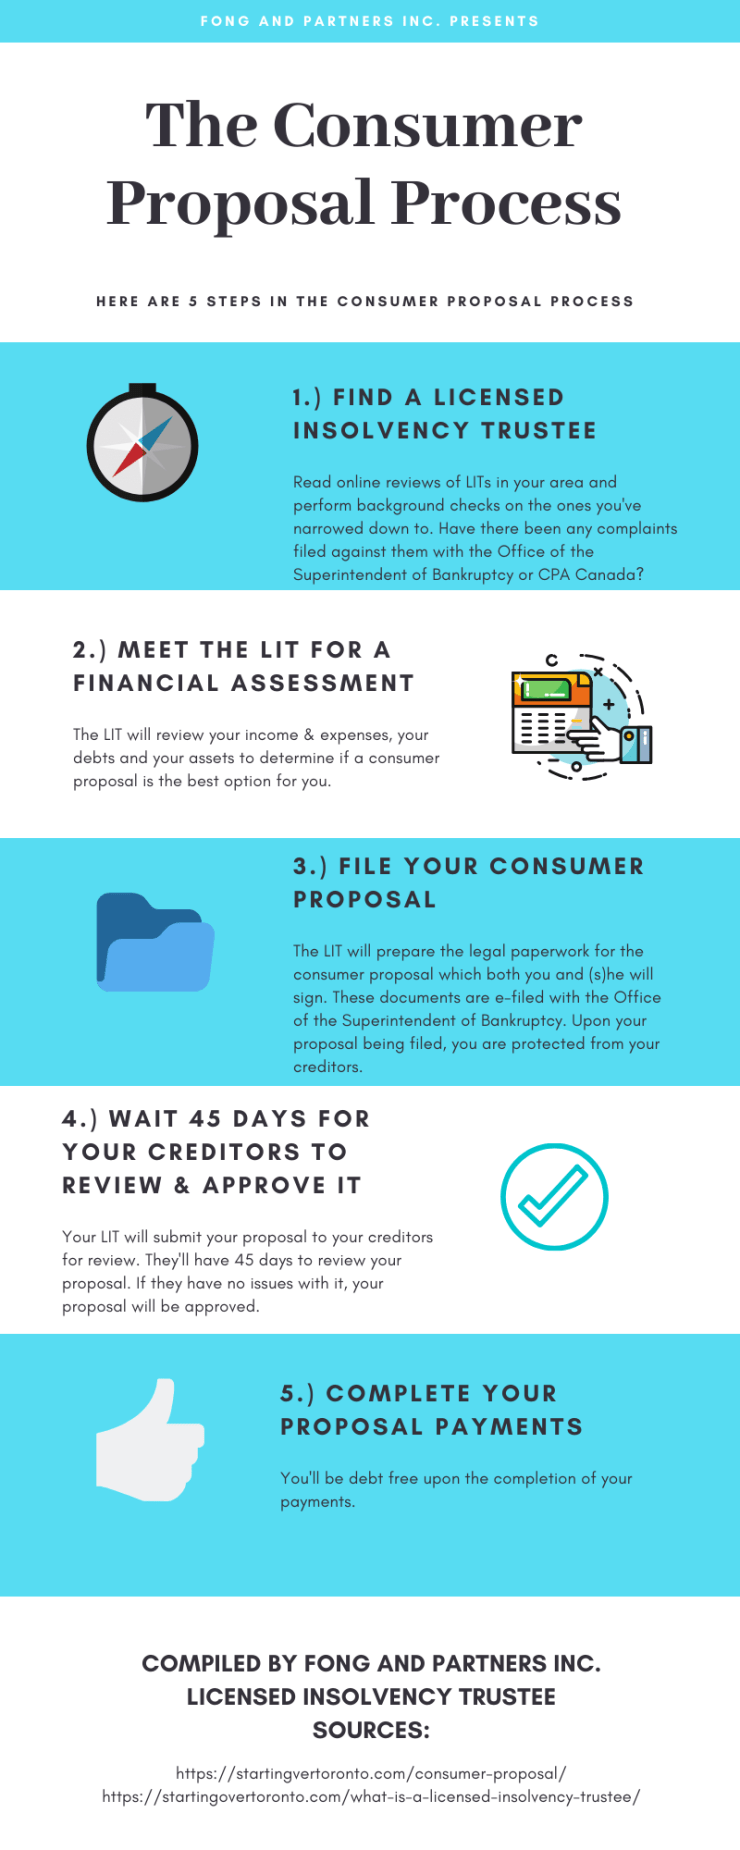 consumer proposal process - fong and partners inc